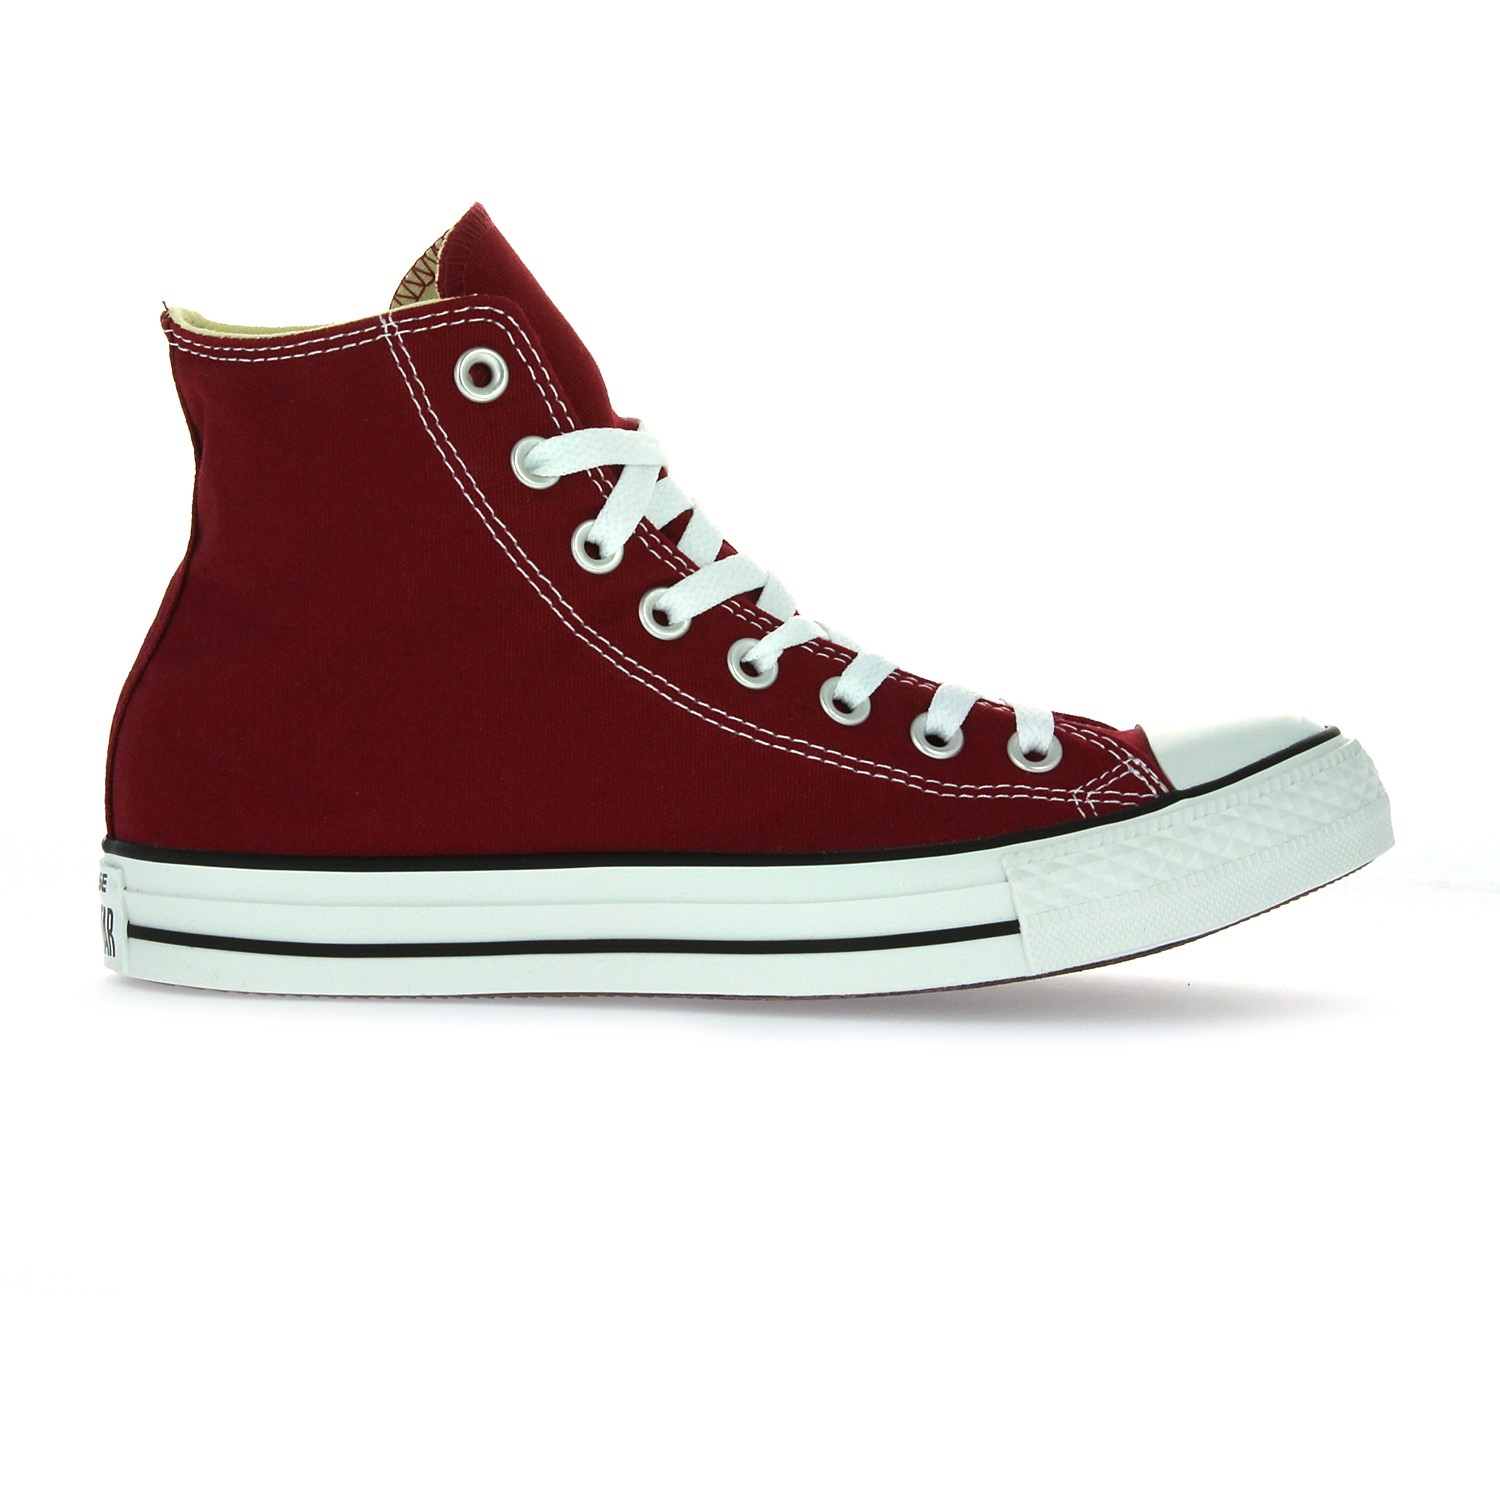 Converse All Star Chuck Taylor Specialty M/W/GS ( M9613C ) παπούτσια    παιδί    σχολικά  size 35 5 40    πάνινα